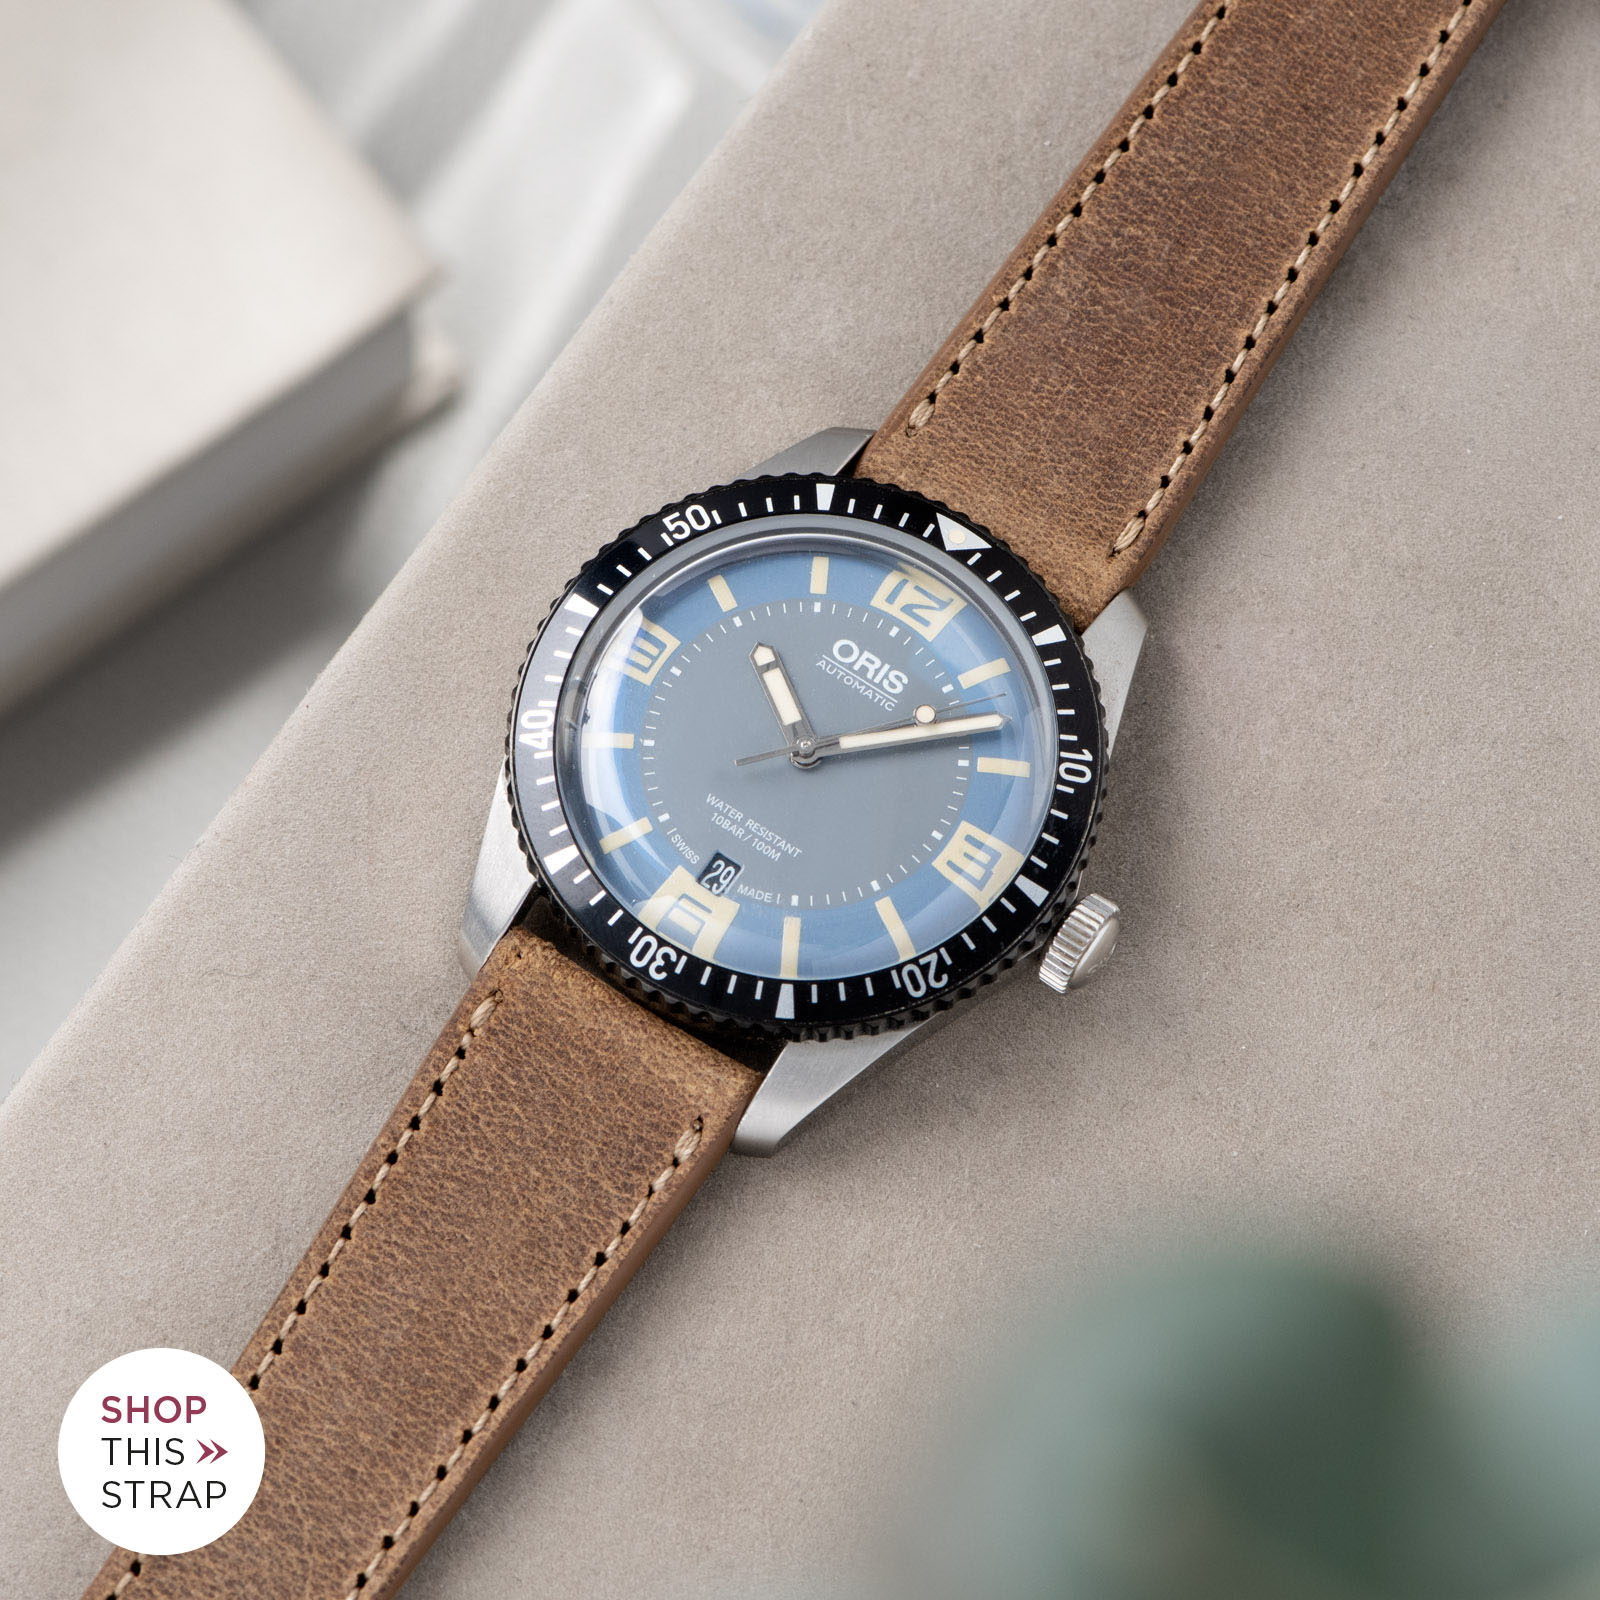 Bulang and Sons_Strap Guide_Oris Automatic Divers Sixty-Five Deaville_CINNAMON BROWN LEATHER WATCH STRAP